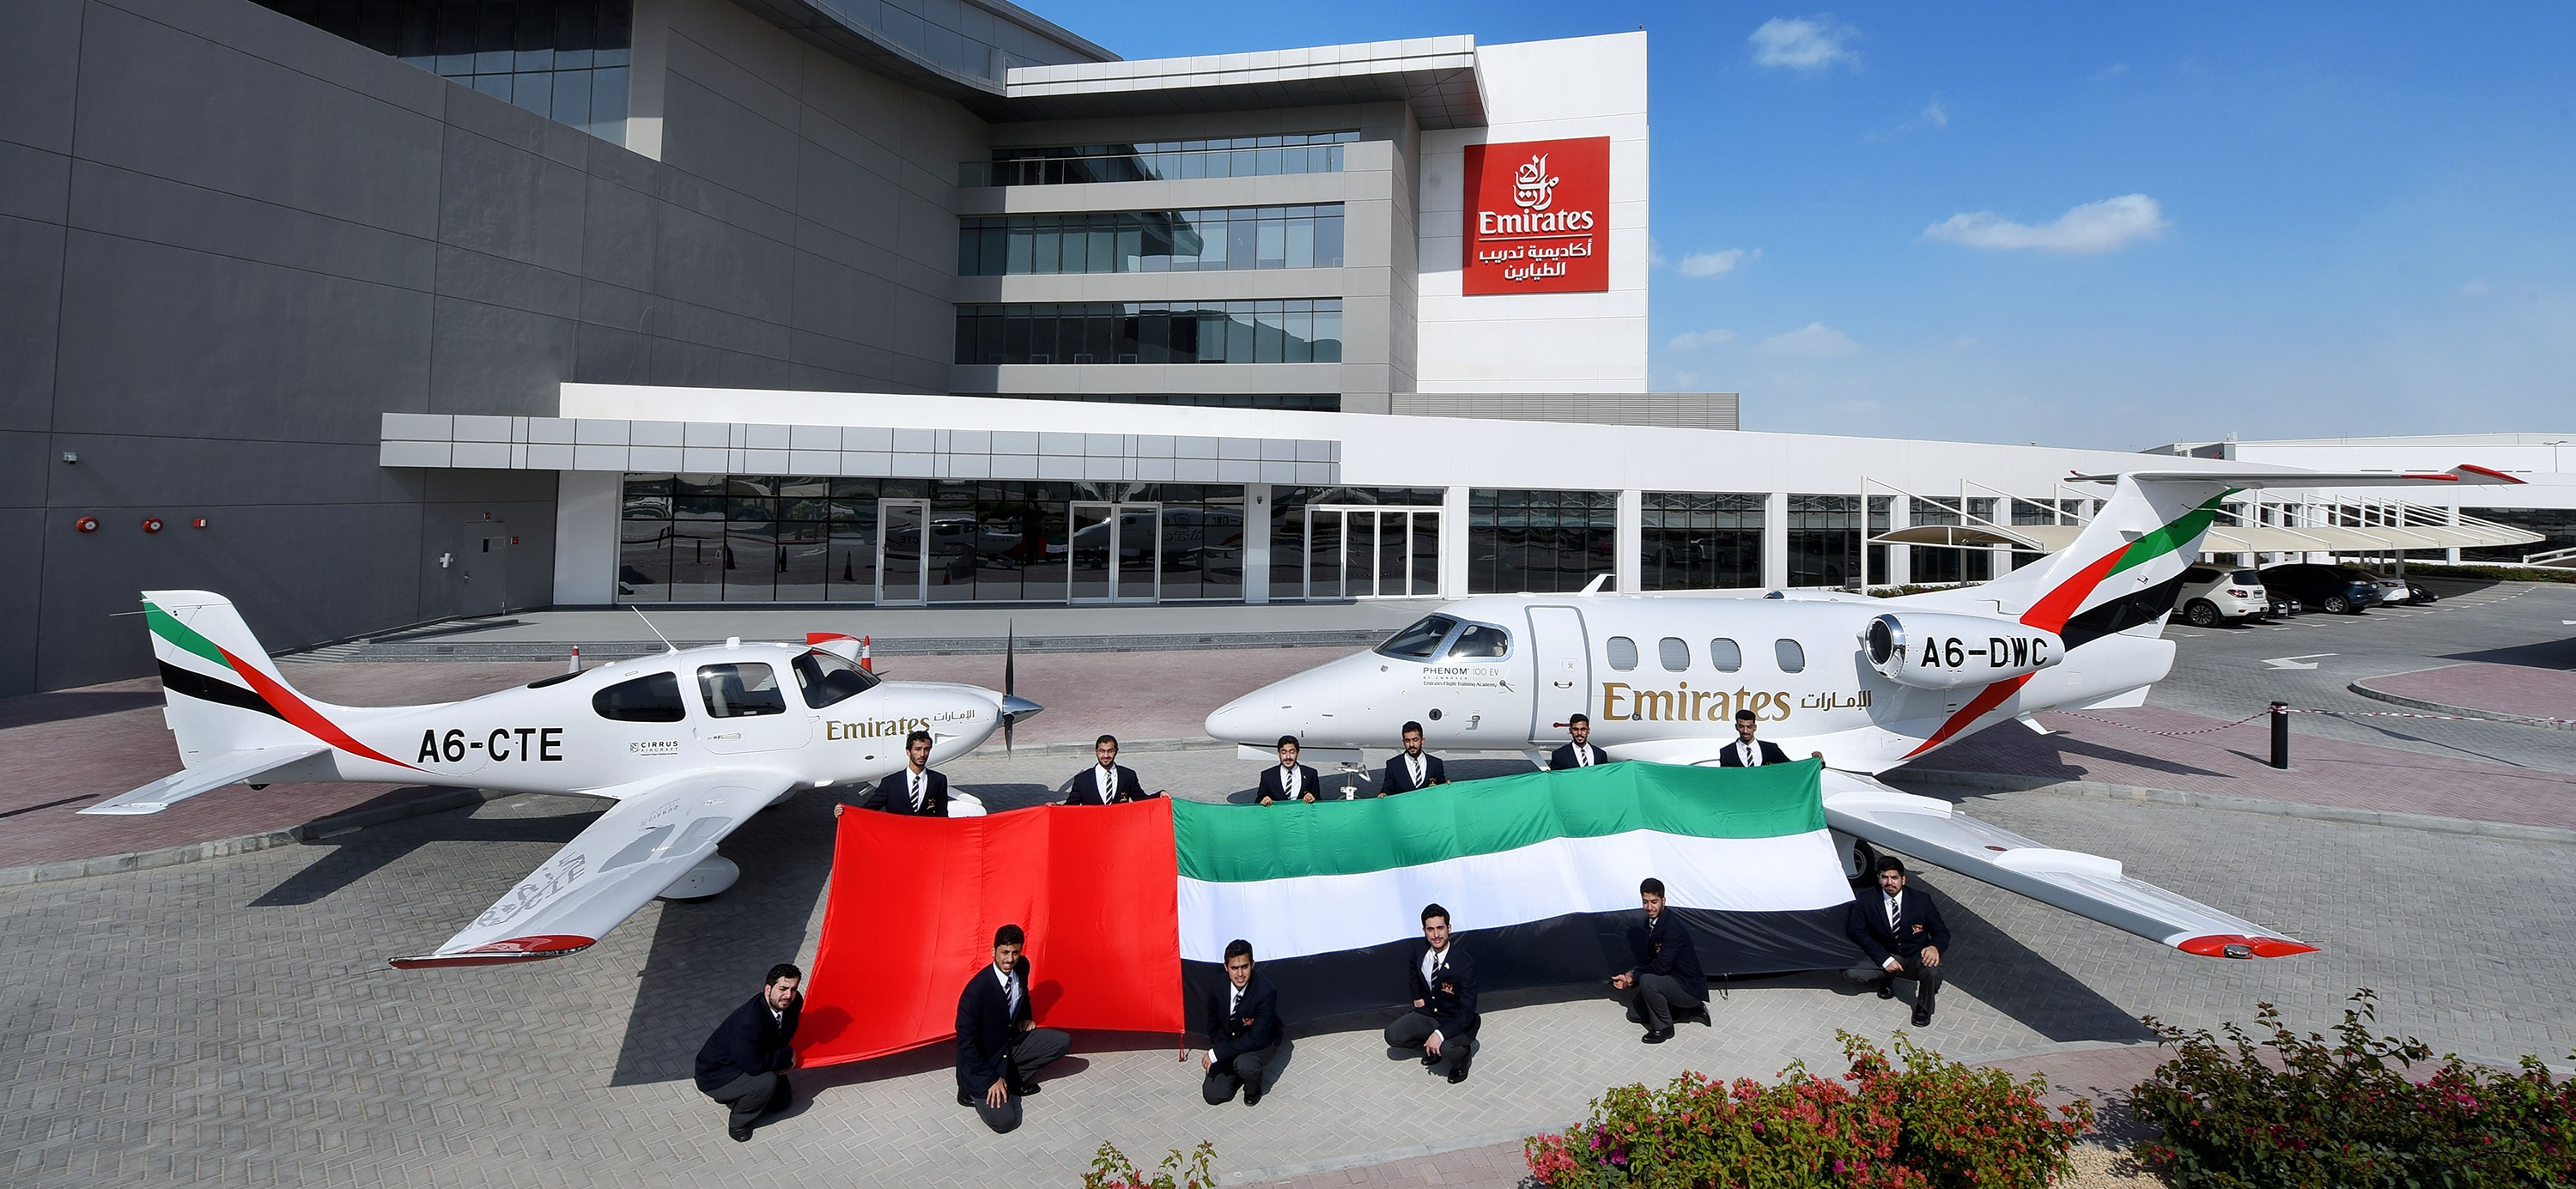 Emirates Flight Training Academy | LinkedIn